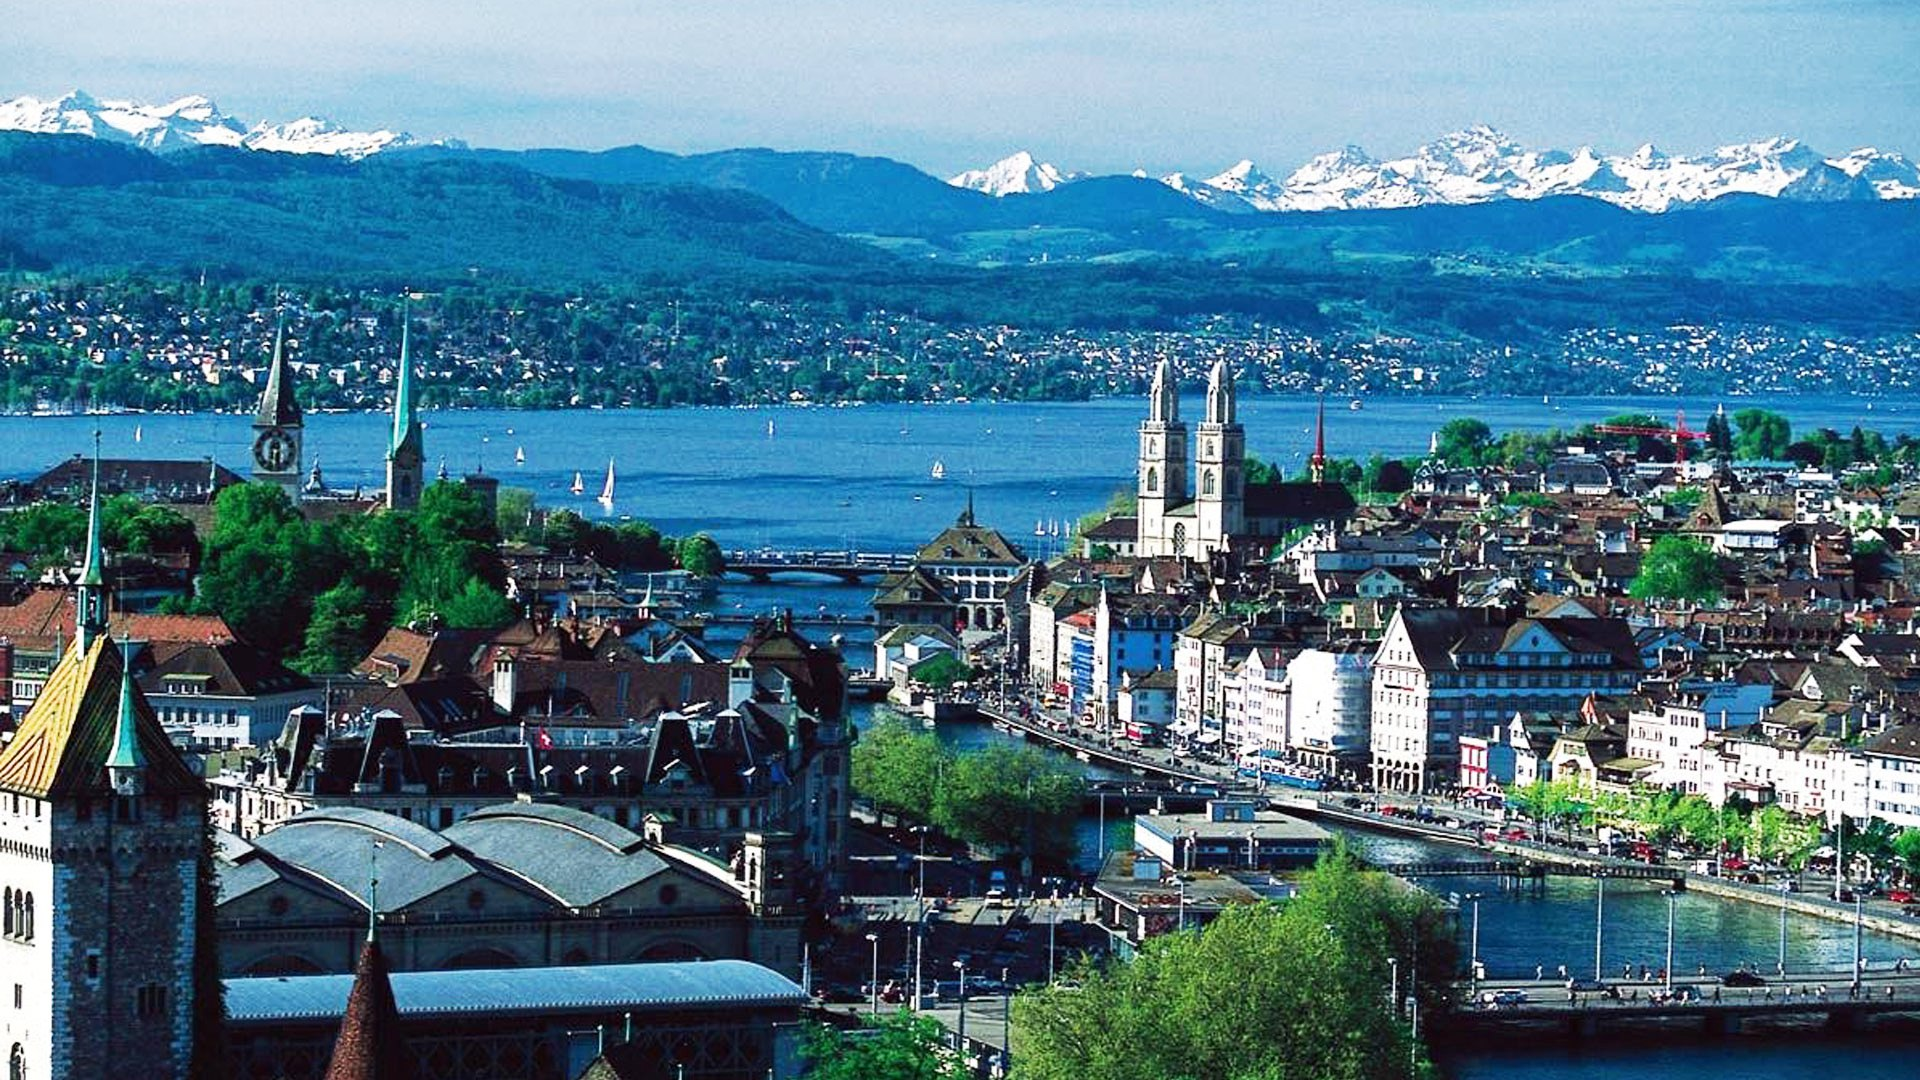 largest city in Switzerland